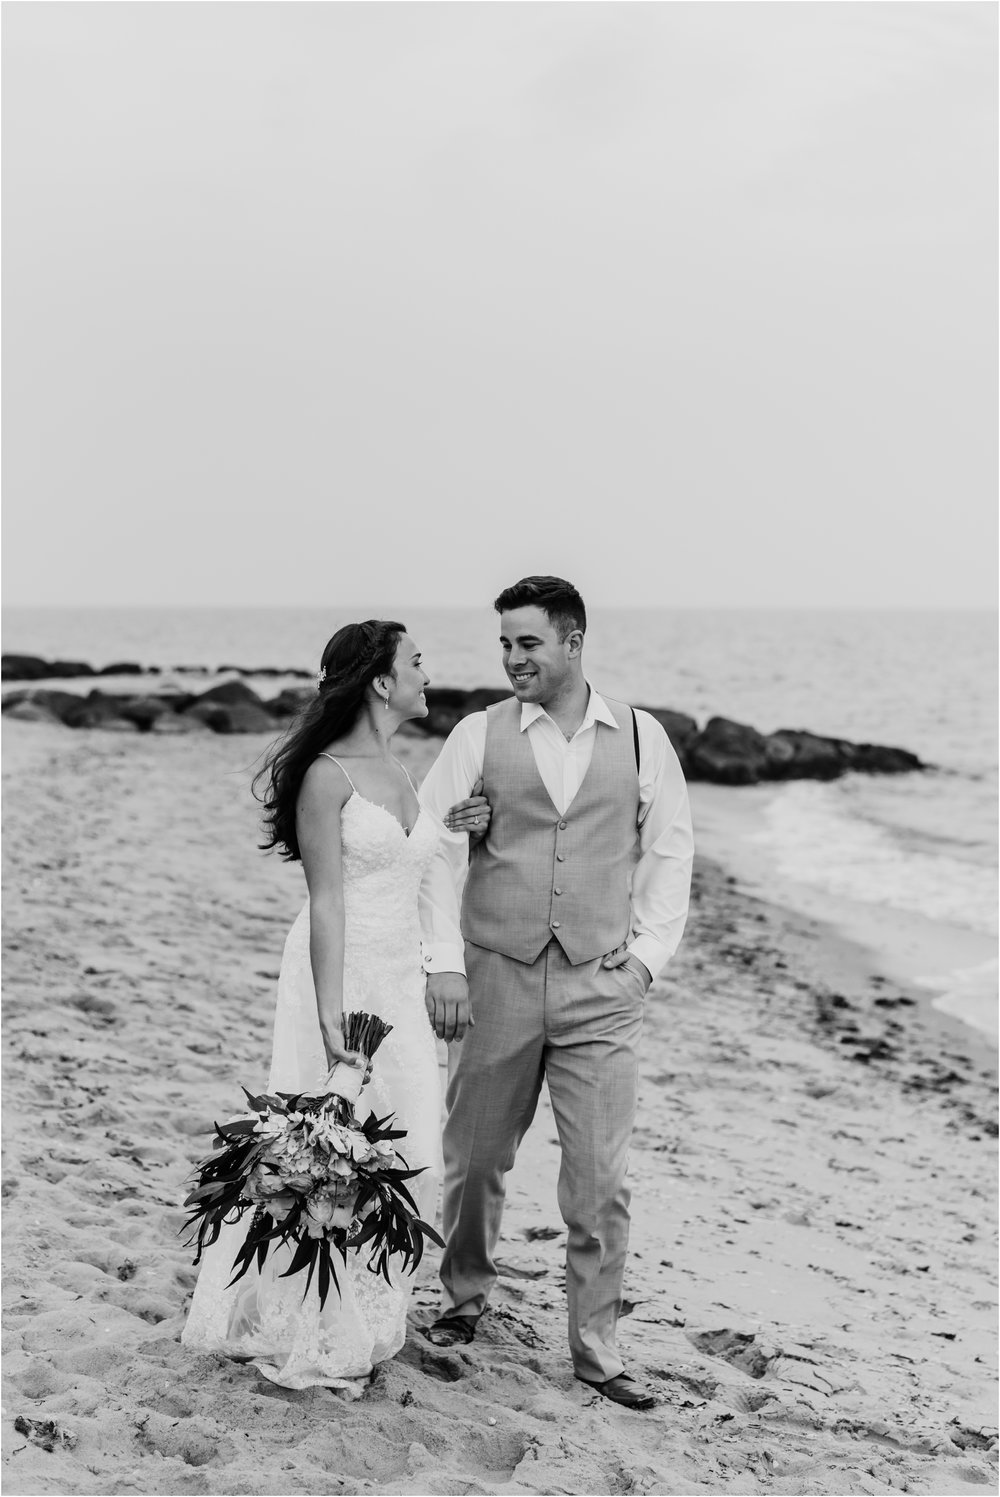 Sarah & Sam Pelham House Cape Cod Wedding Photographer-195.jpg